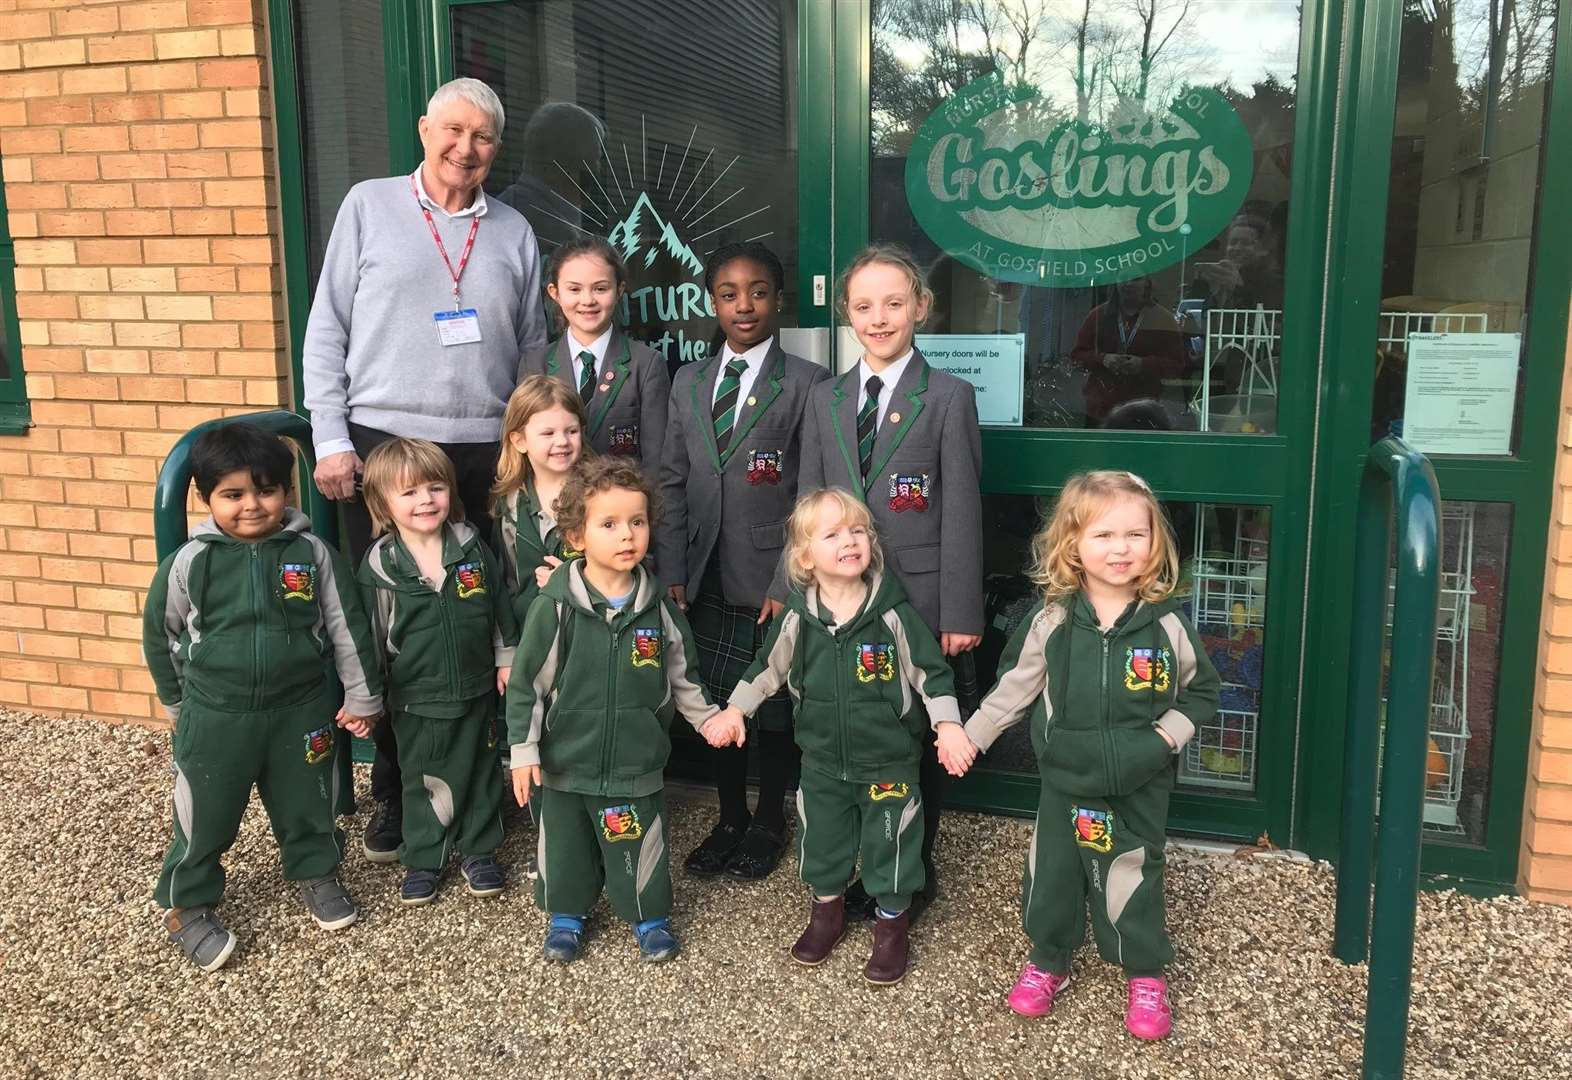 Gosfield School welcomes children's author to mark renaming of nursery